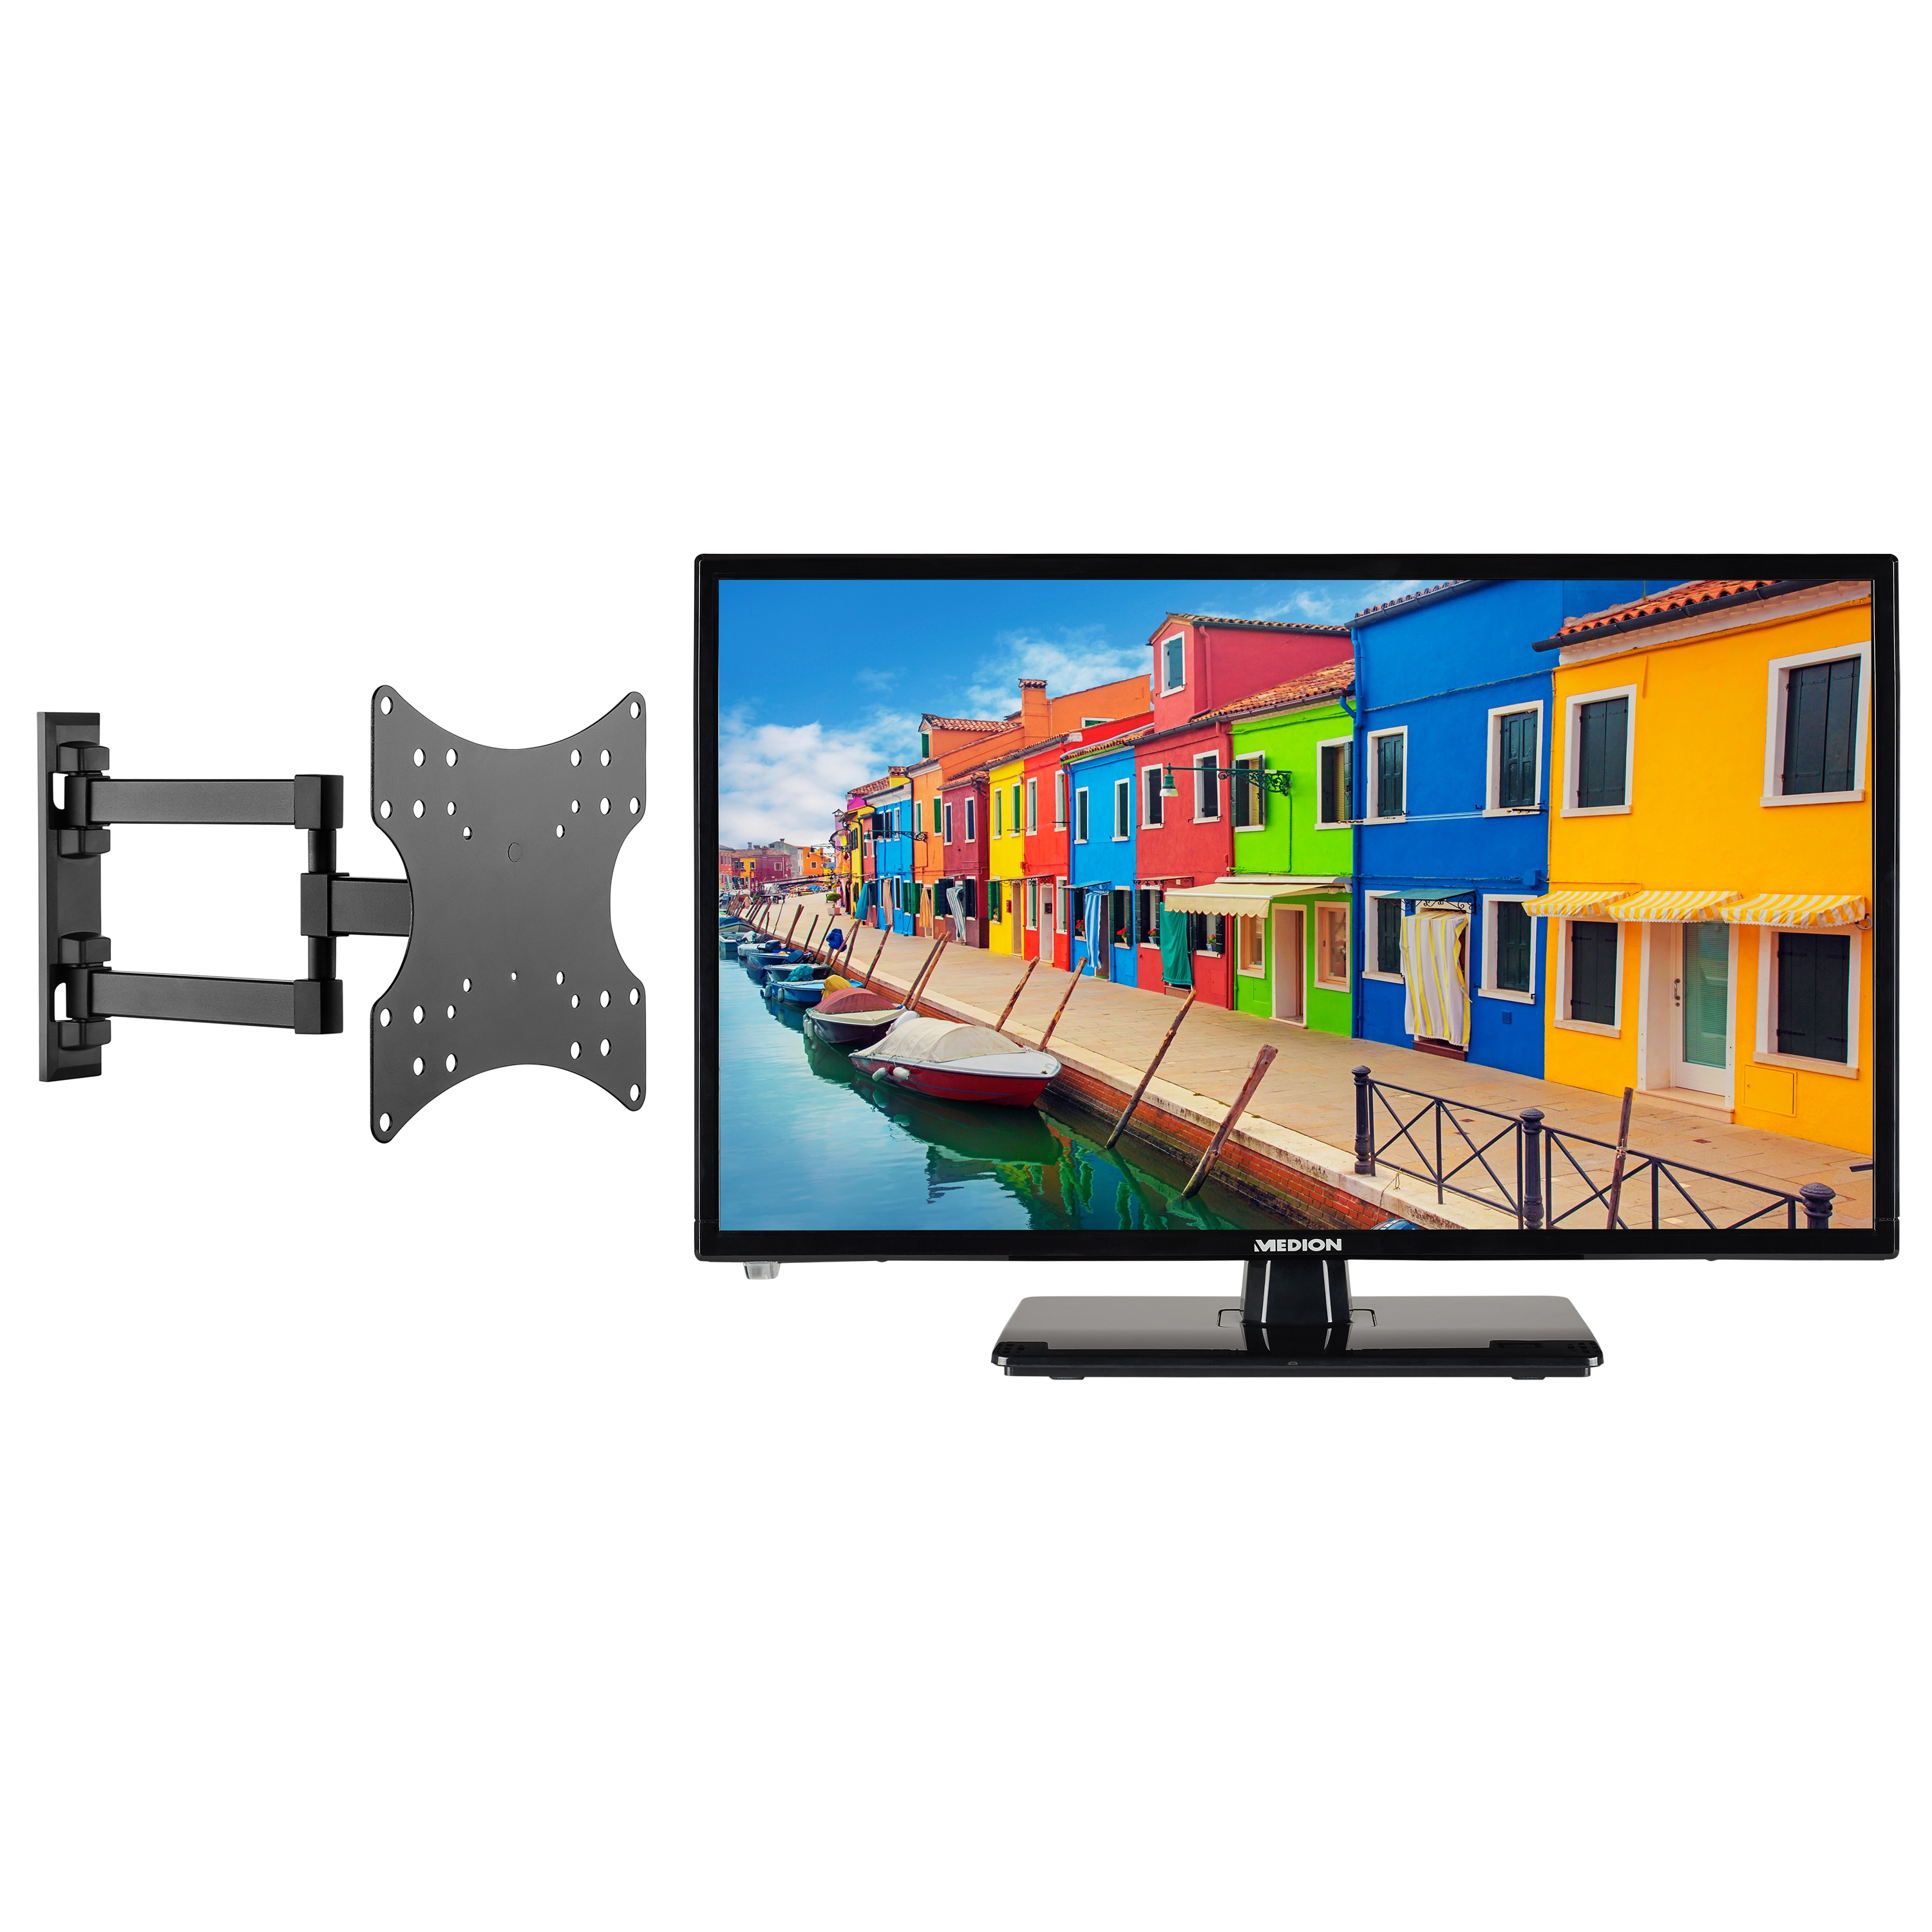 MEDION® Offre combinée ! LIFE E12442 LCD-TV 23 Pouces & GOOBAY Support mural Basic FULLMOTION (D20)